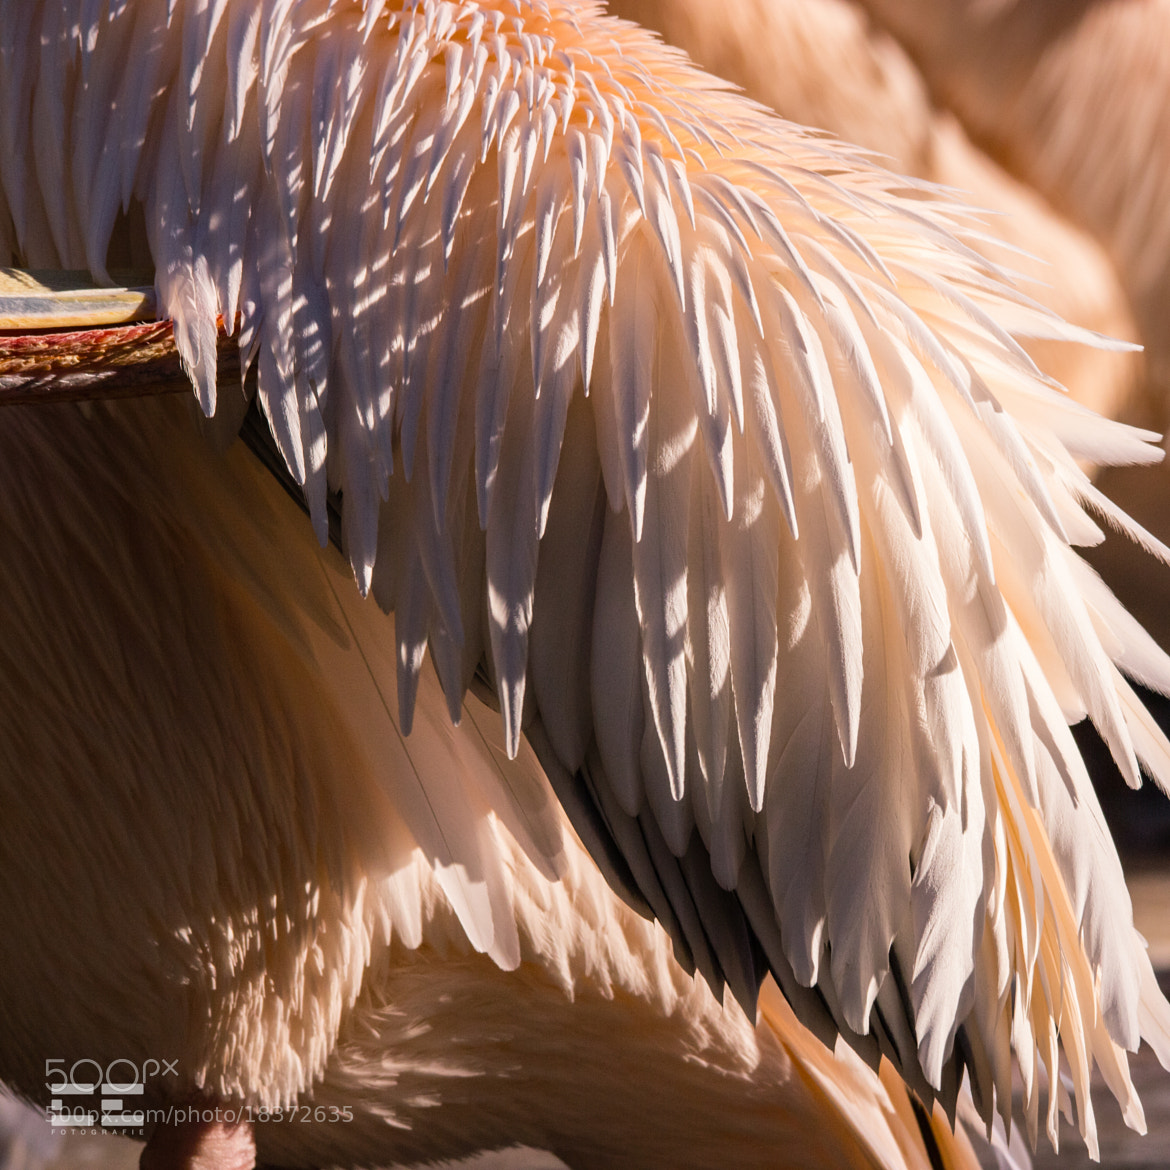 Photograph Feathers In The Sun by Carolin Ernst on 500px